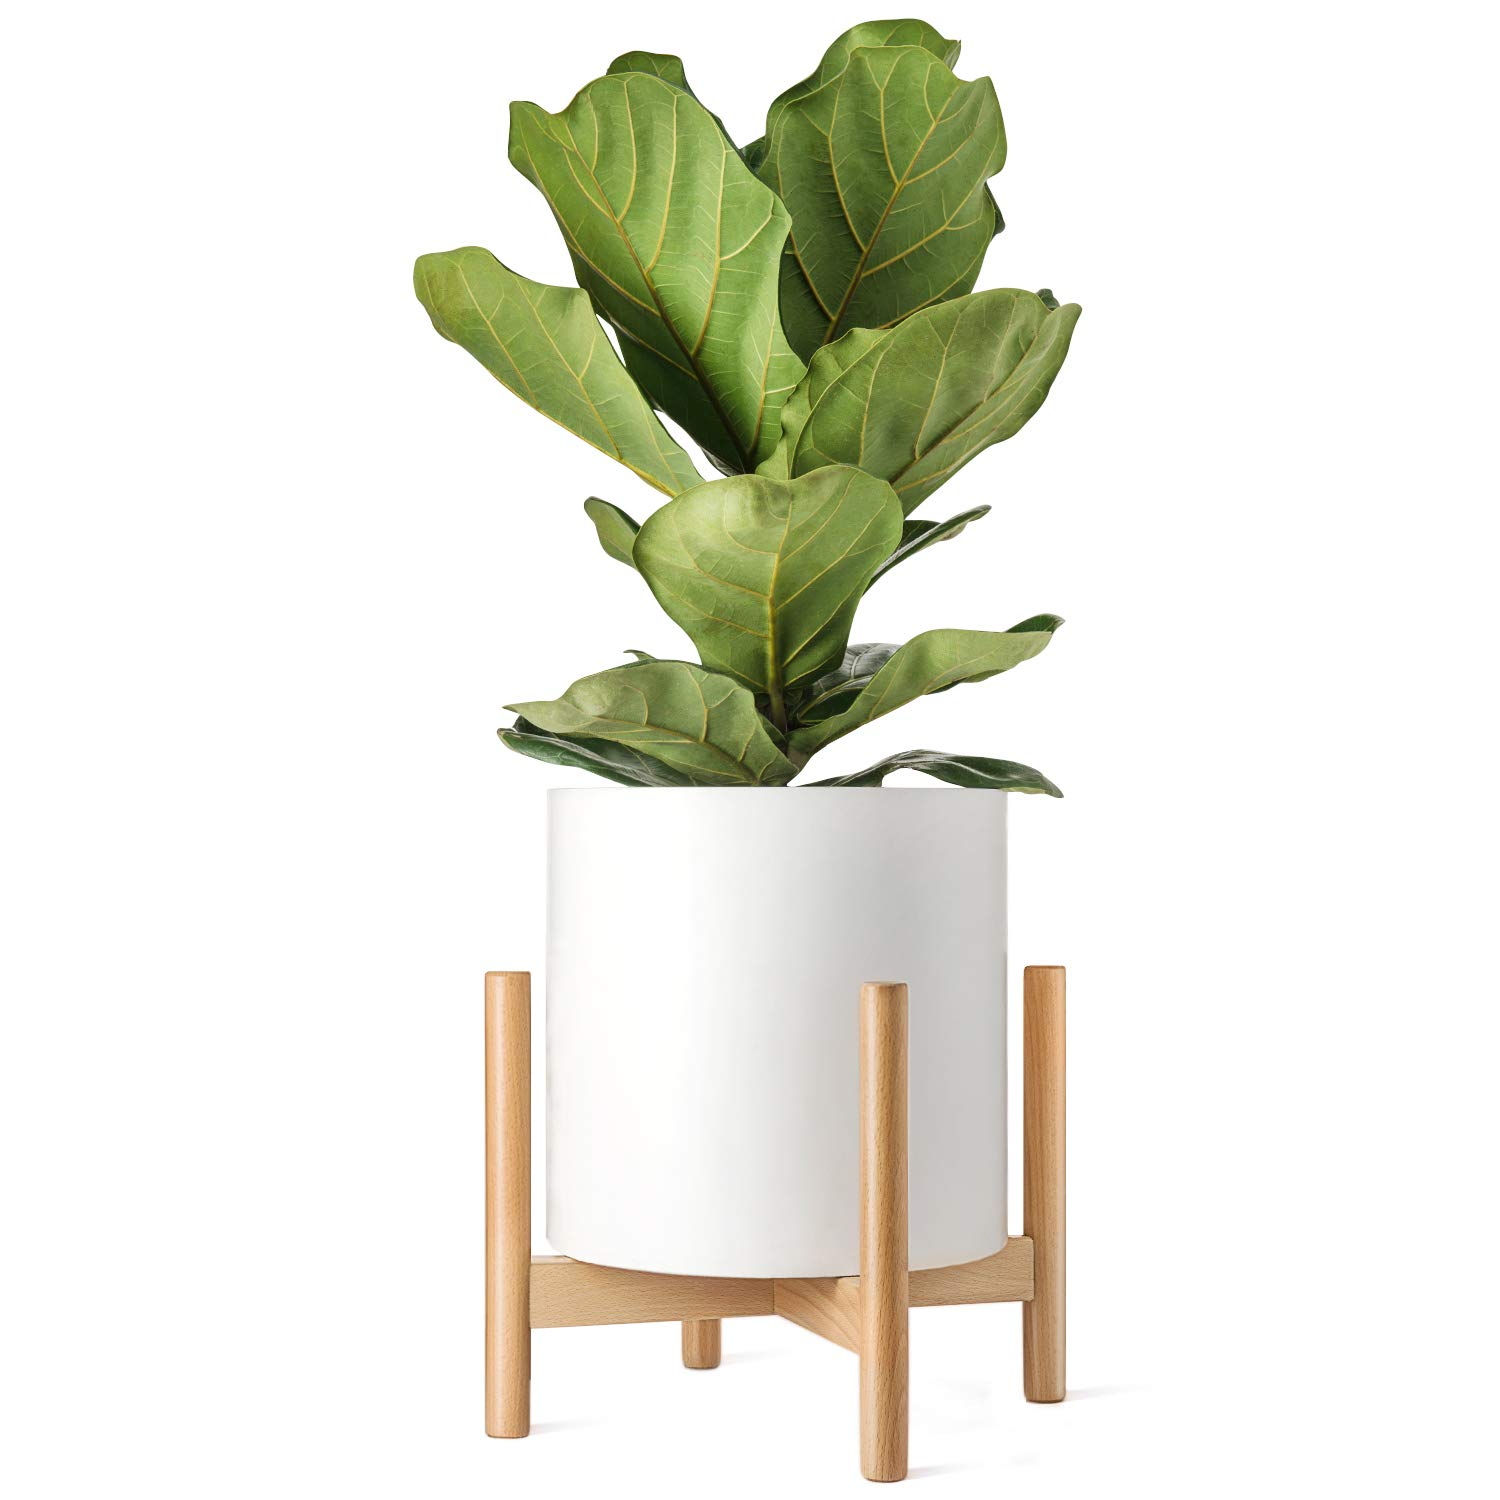 Mkono Plant Stand Mid Century 14'' Plant Holder (Pot Not Included) Wood Flower Potted Display Rack, Up to 14 Inch Planter, Natural